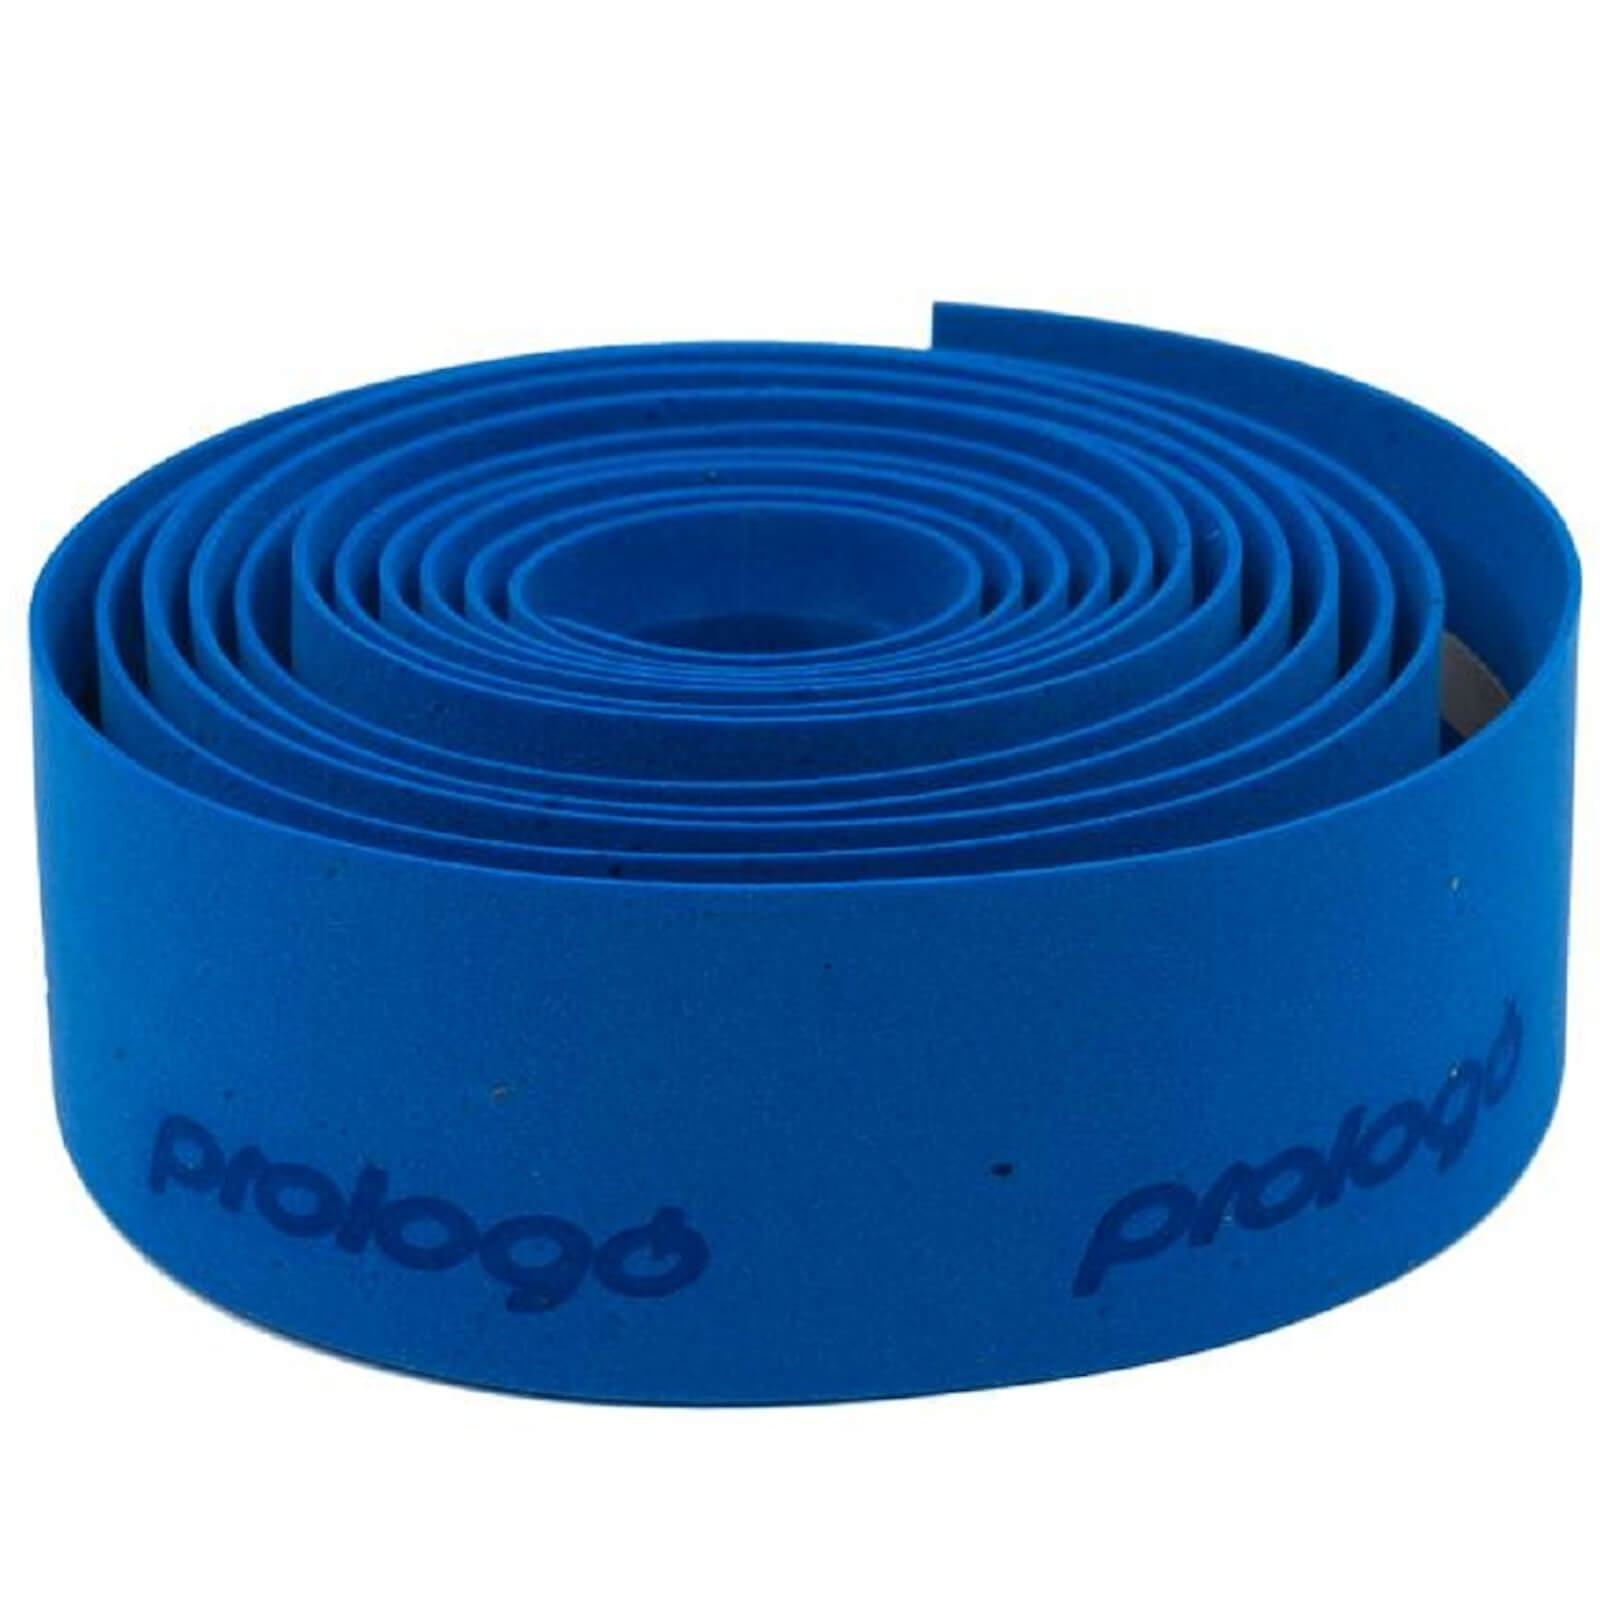 Prologo Plaintouch Handlebar Tape - One Size - Blue